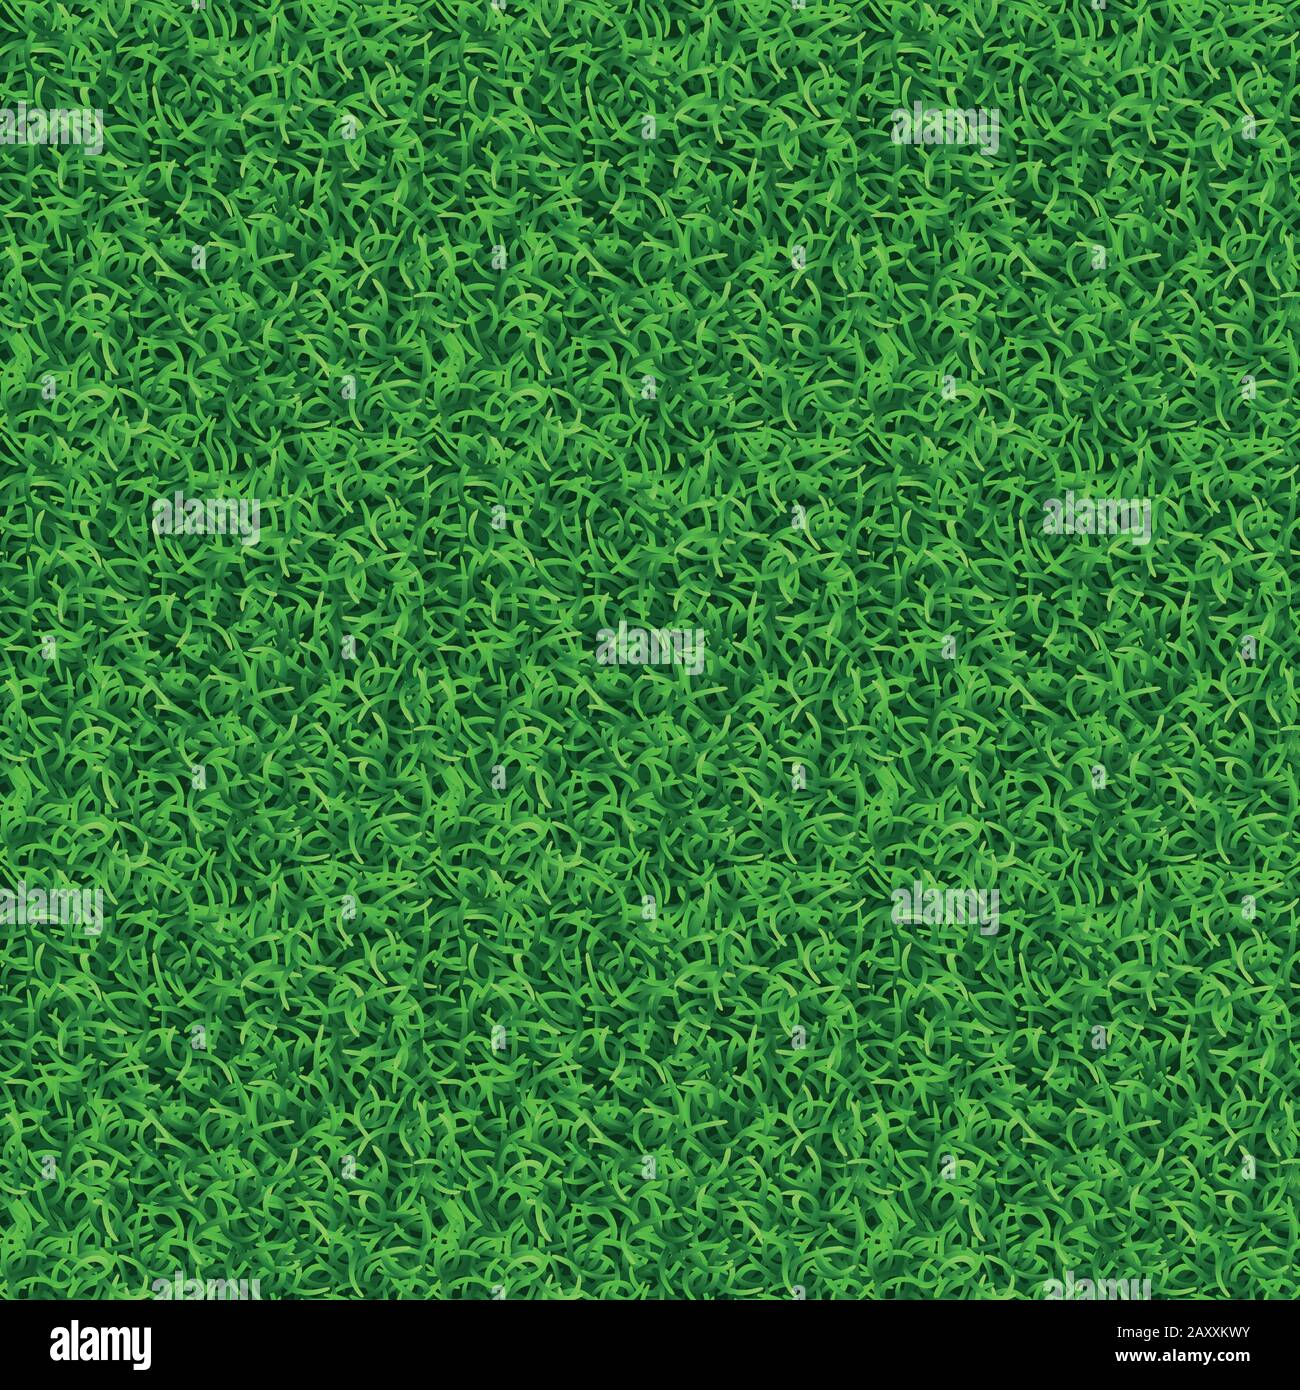 seamless grass vector texture green grass meadow grass pattern field grass seamless texture illustration stock vector image art alamy https www alamy com seamless grass vector texture green grass meadow grass pattern field grass seamless texture illustration image343564423 html